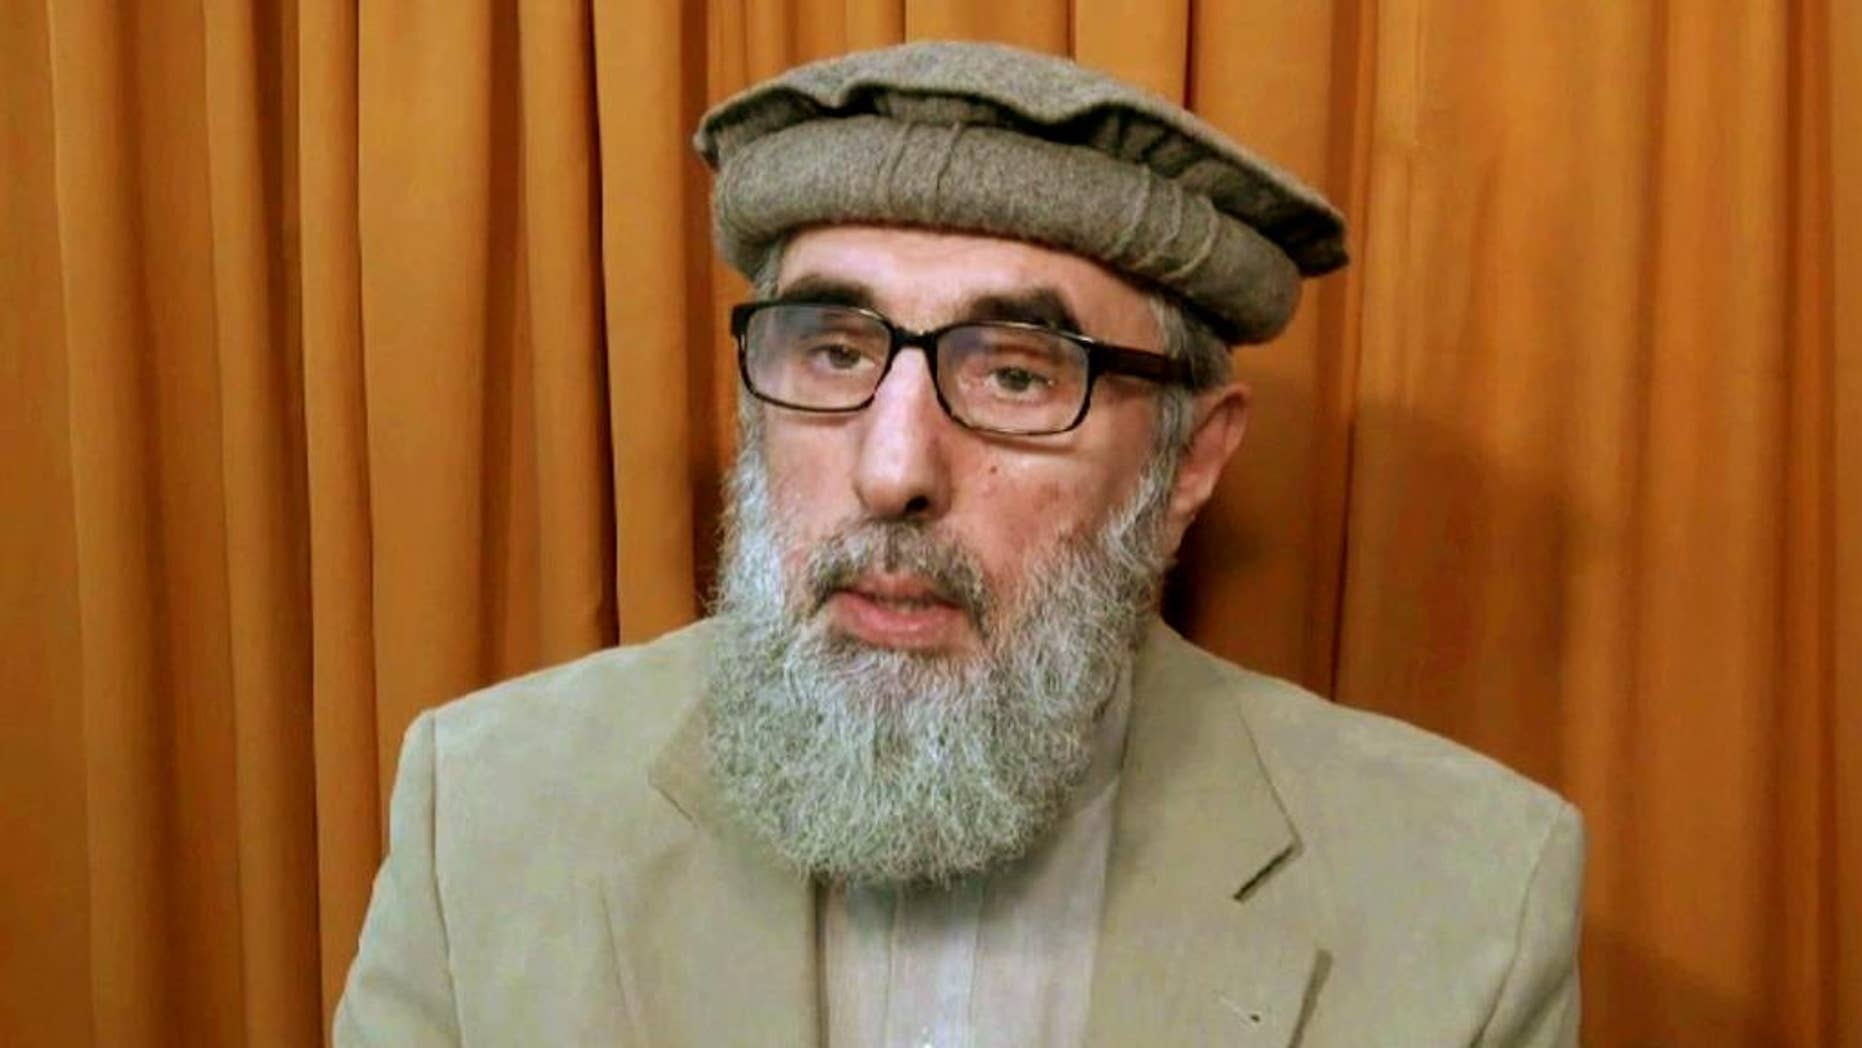 FILE - This file image made from video released to the Associated Press during the week of Nov. 21, 2015 shows Afghan warlord Gulbuddin Hekmatyar, now in his late 60s, in an undisclosed location. The United Nations removed the name of the former Afghan warlord from its Islamic State group and al-Qaida sanctions list. According to a statement posted Friday, Feb. 3, 2017, by the Security Council, a U.N. committee removed Gulbuddin Hekmatyar's name from the sanctions list. (AP photo via AP video, File)